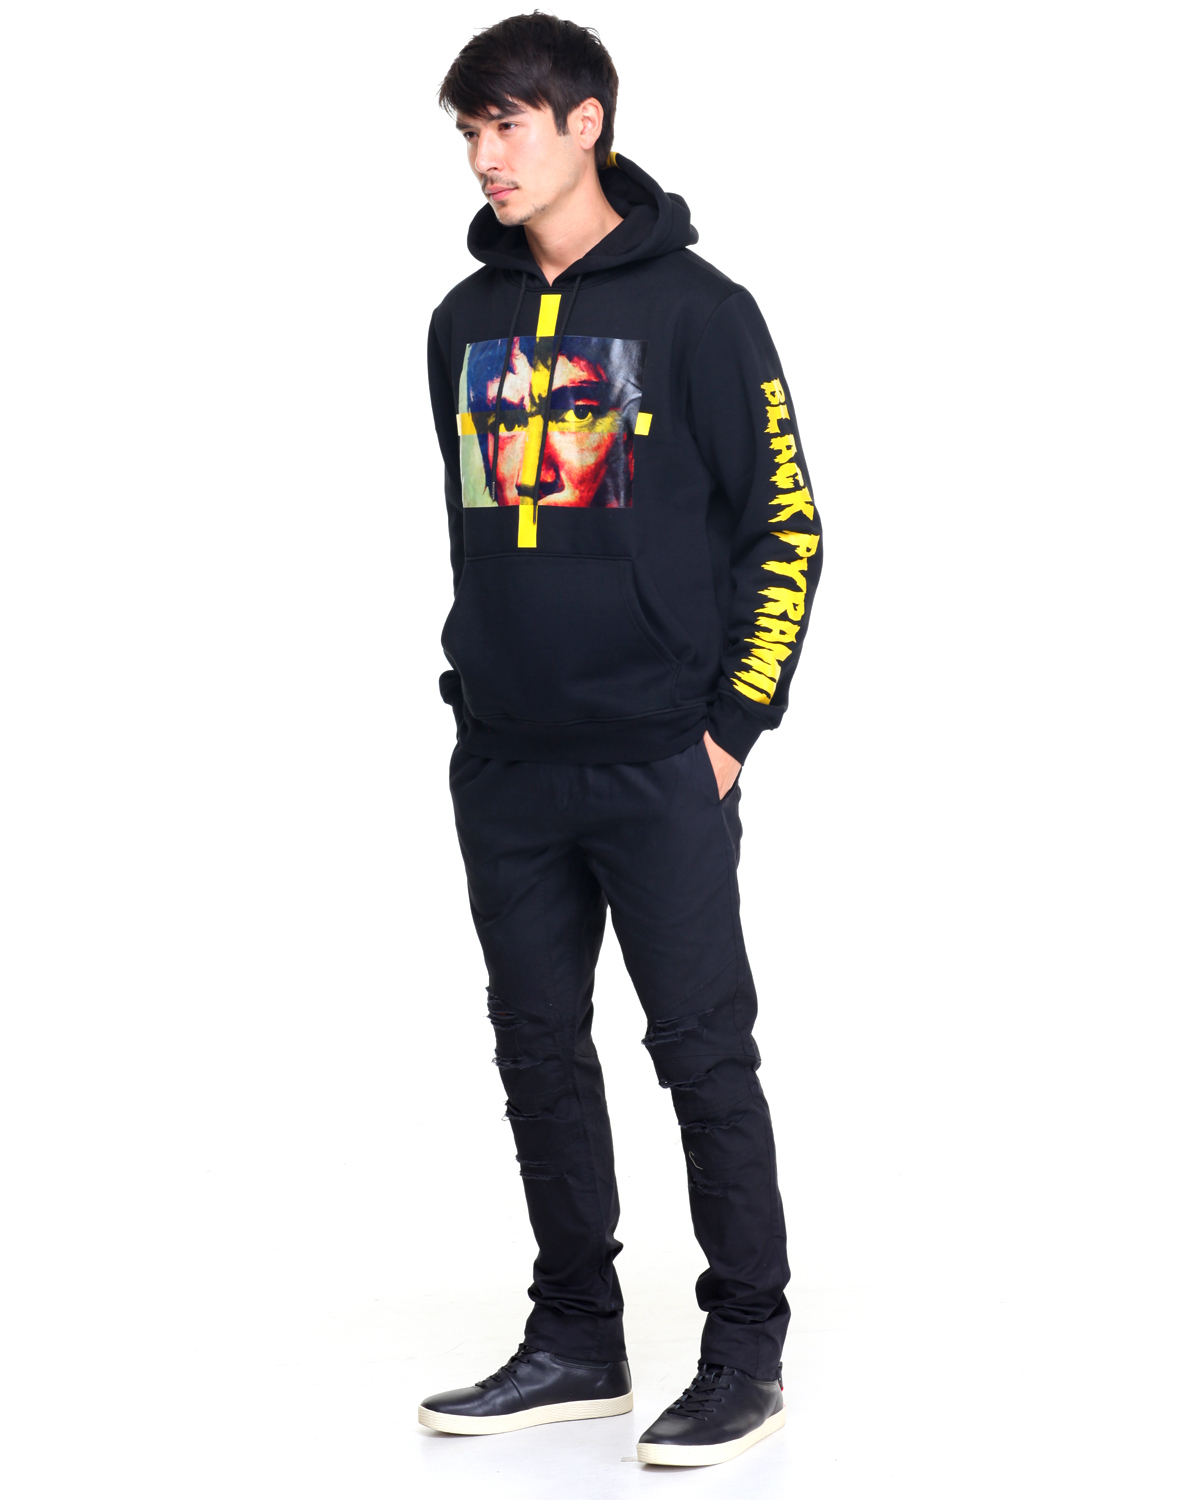 【Chris Brown愛用】☆16AW新作☆Lee Crosshairs Pullover